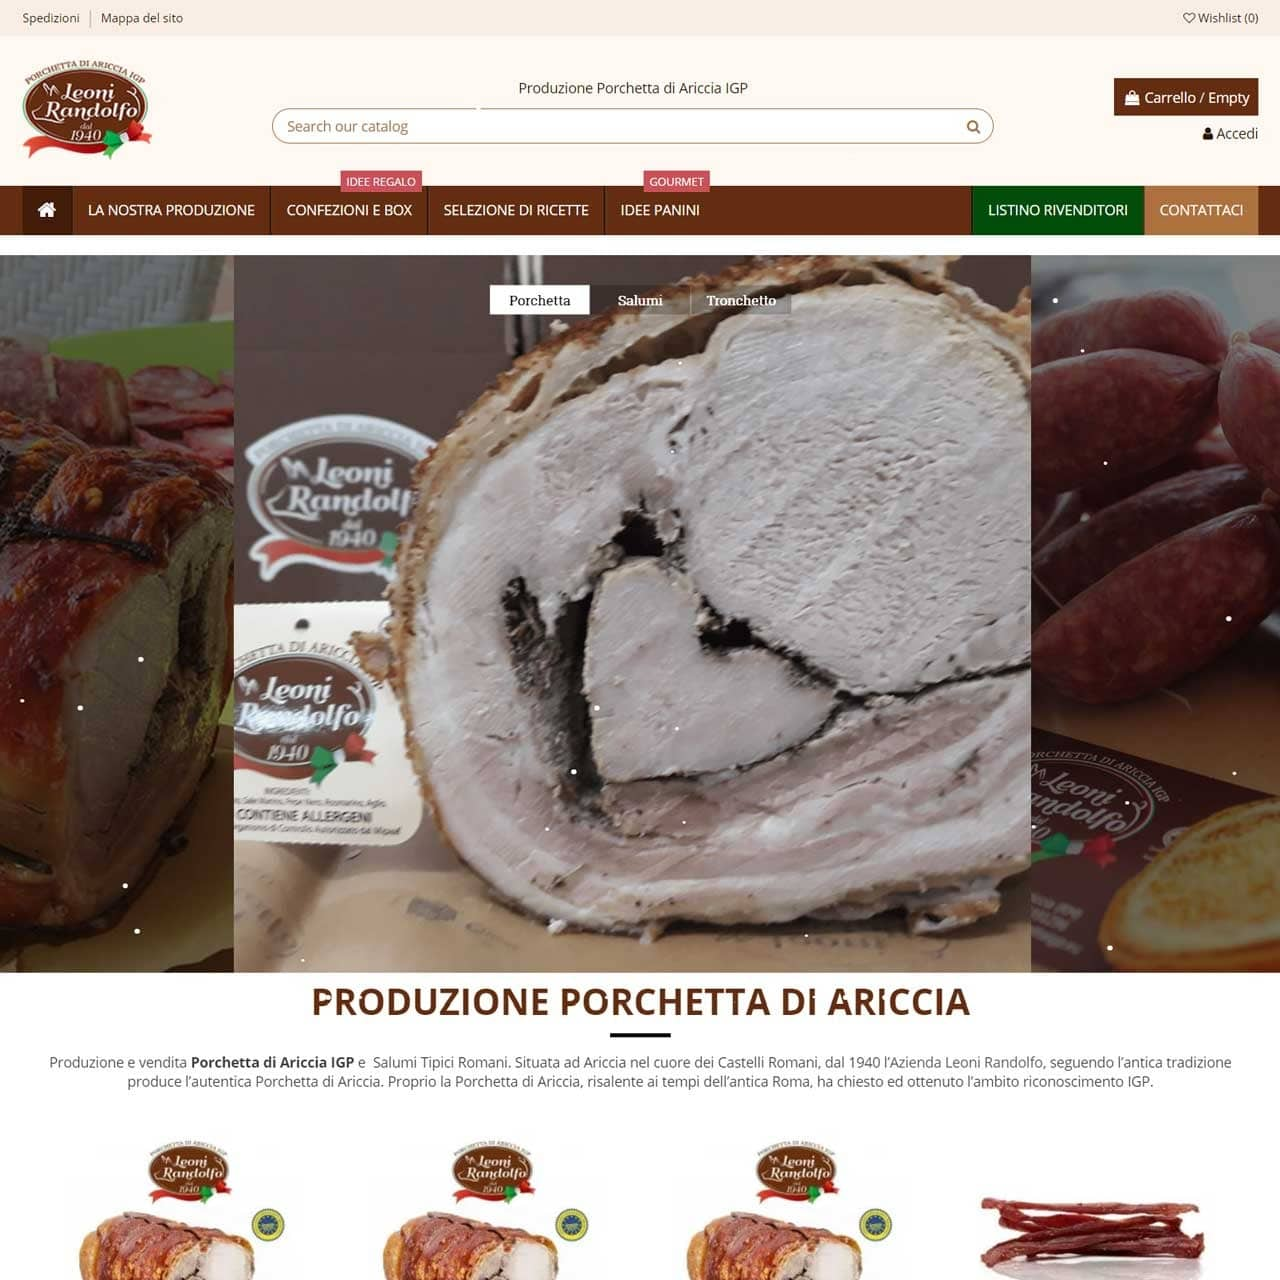 Creation of Leoni Food e-commerce